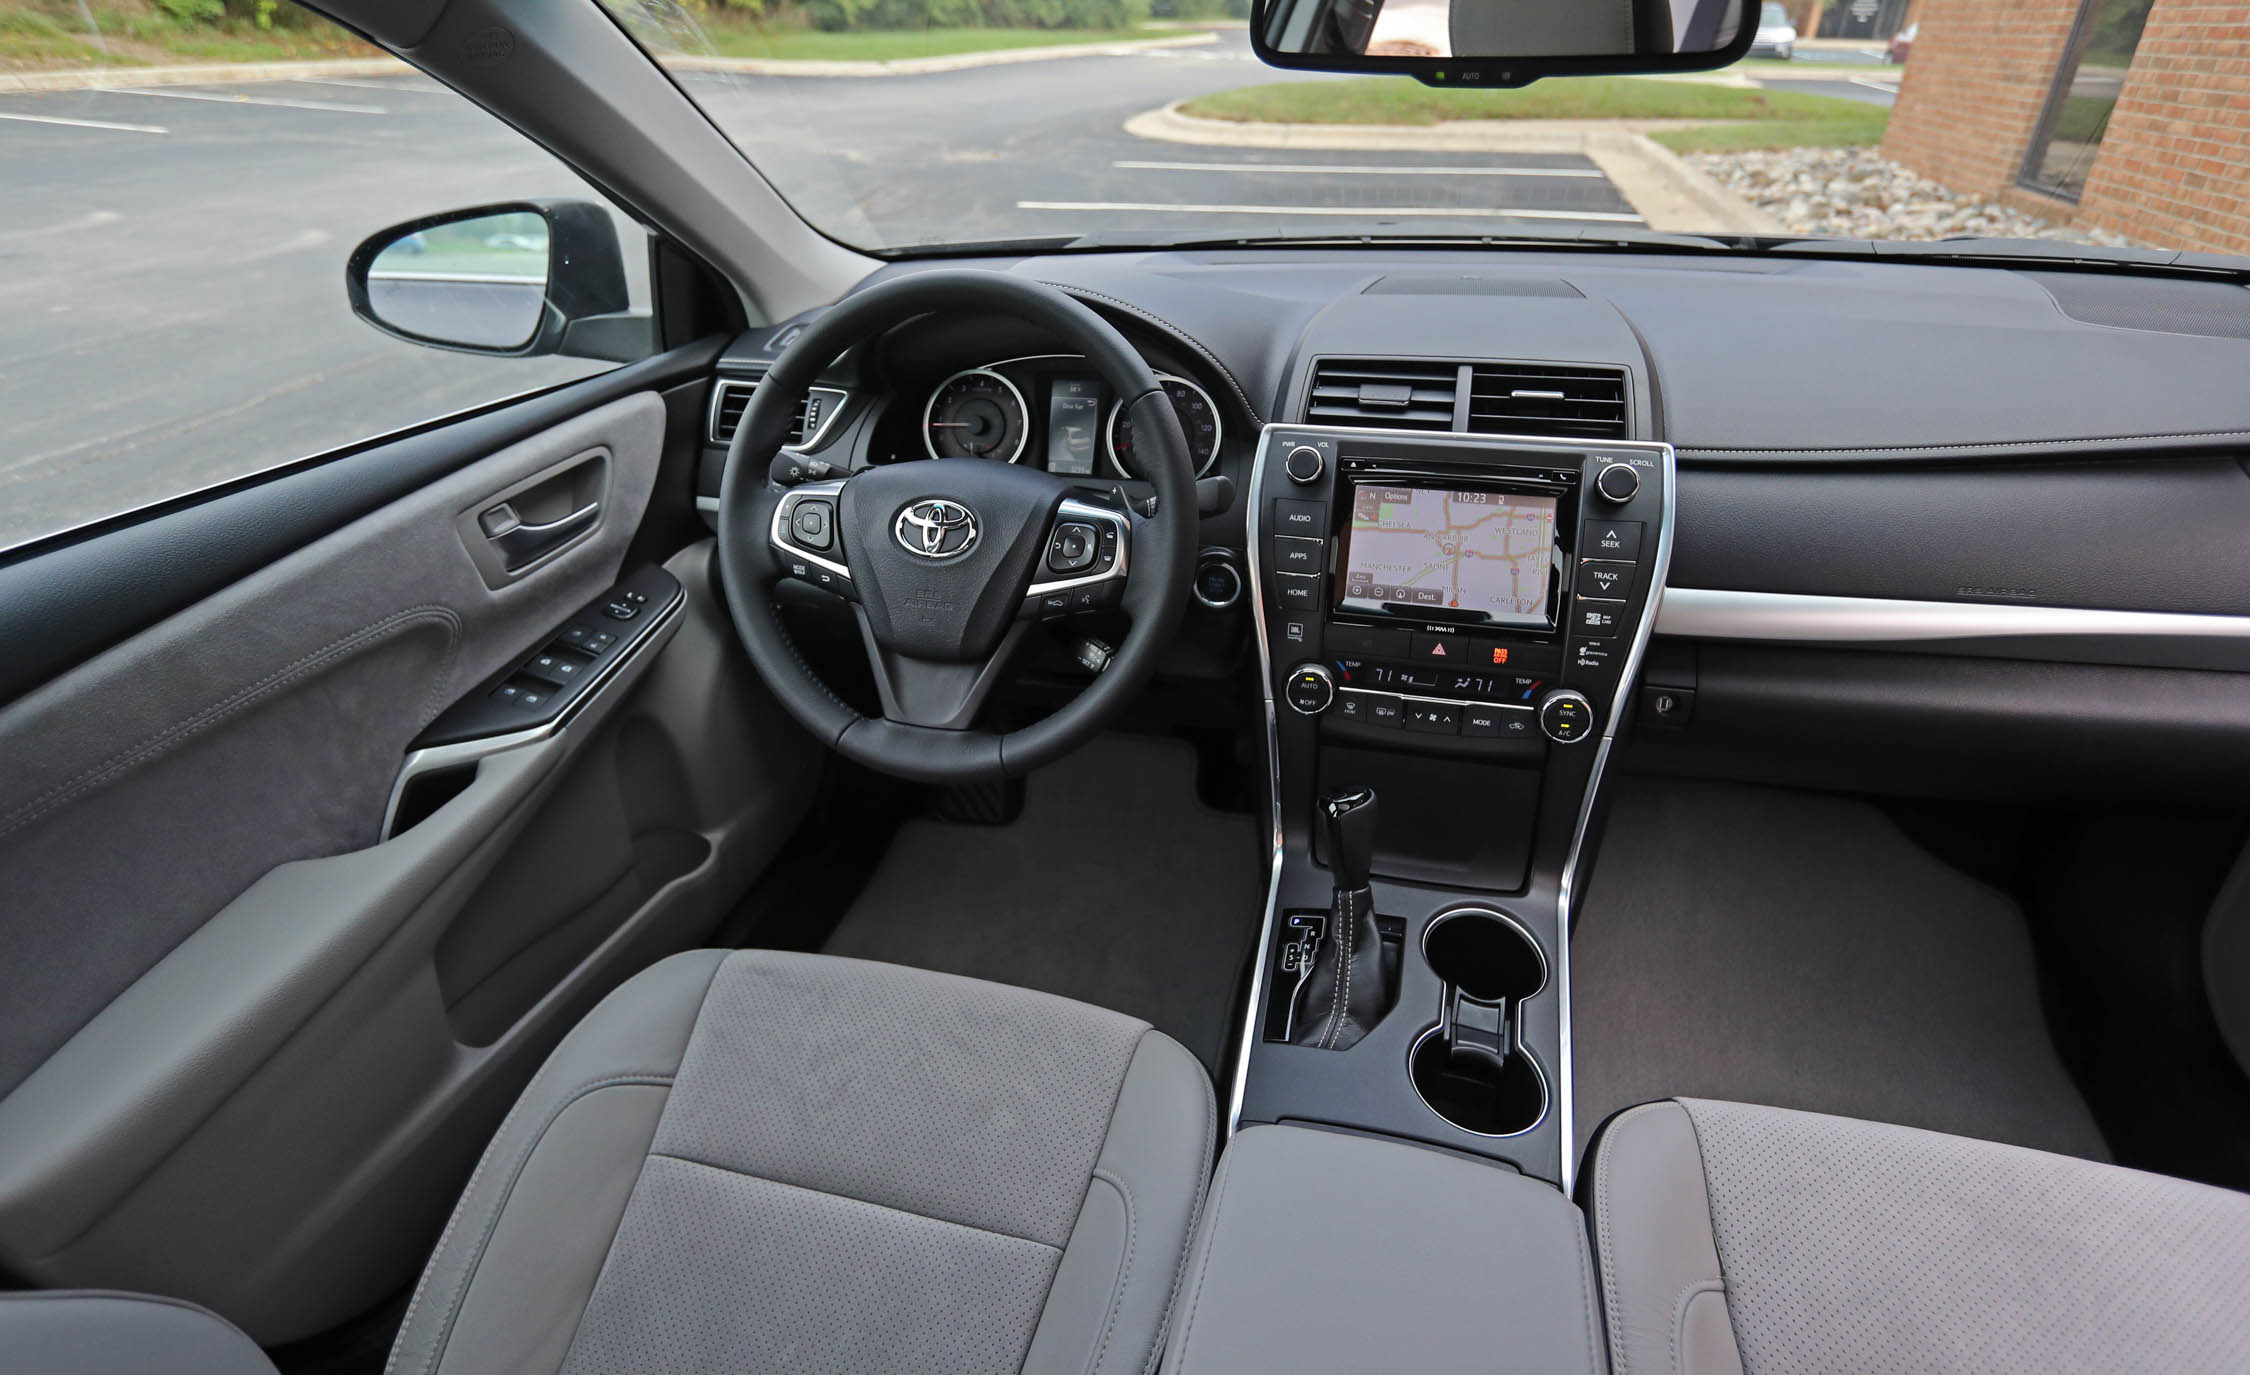 2017 Toyota Camry Interior Dashboard (Photo 17 of 37)